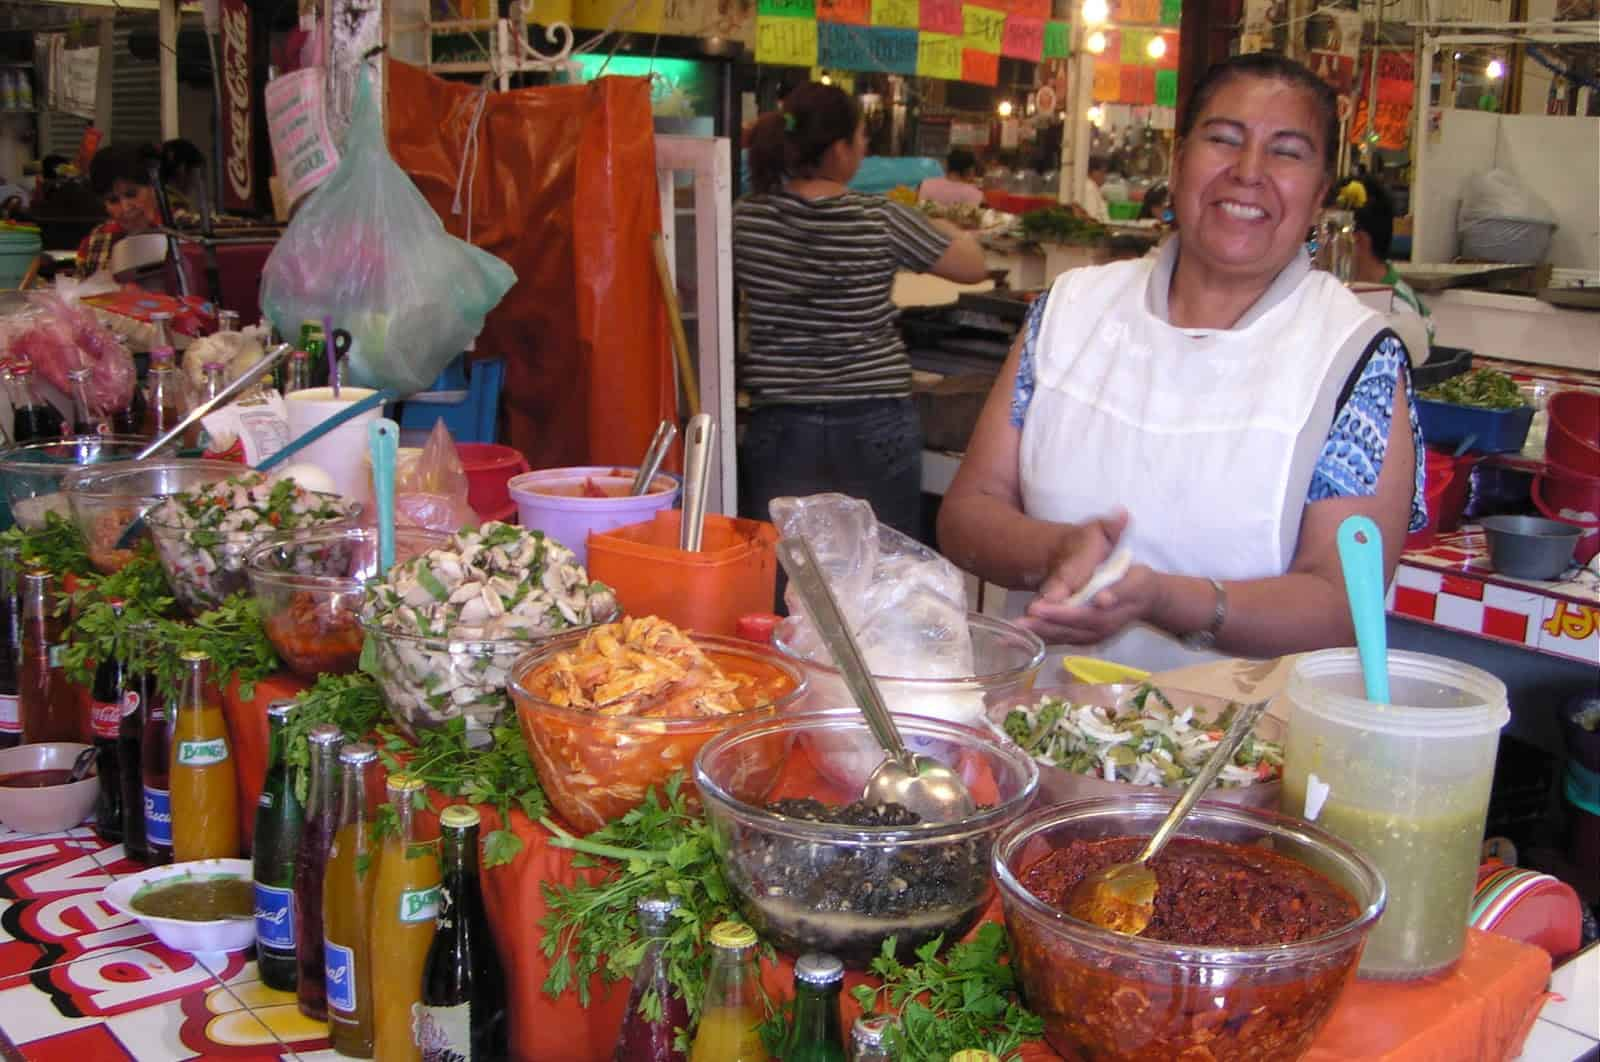 at the market getting some ingredients to make Mayan food Food in the Yucatan distinctively different than traditional Mexican